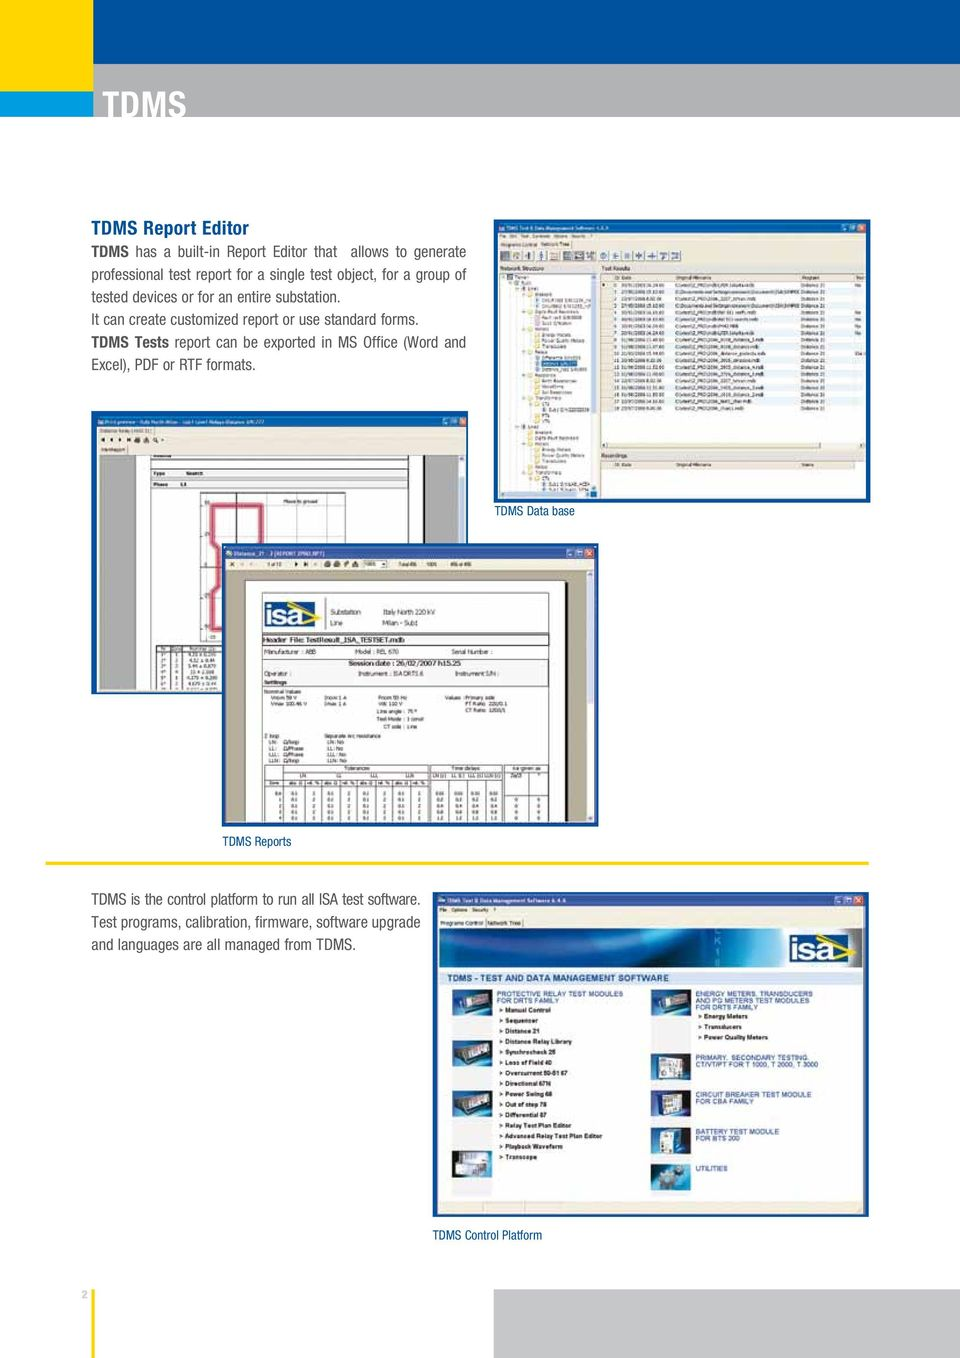 Tdms Test Data Management Software Pdf Logic Diagram In Isa Format Tests Report Can Be Exported Ms Office Word And Excel